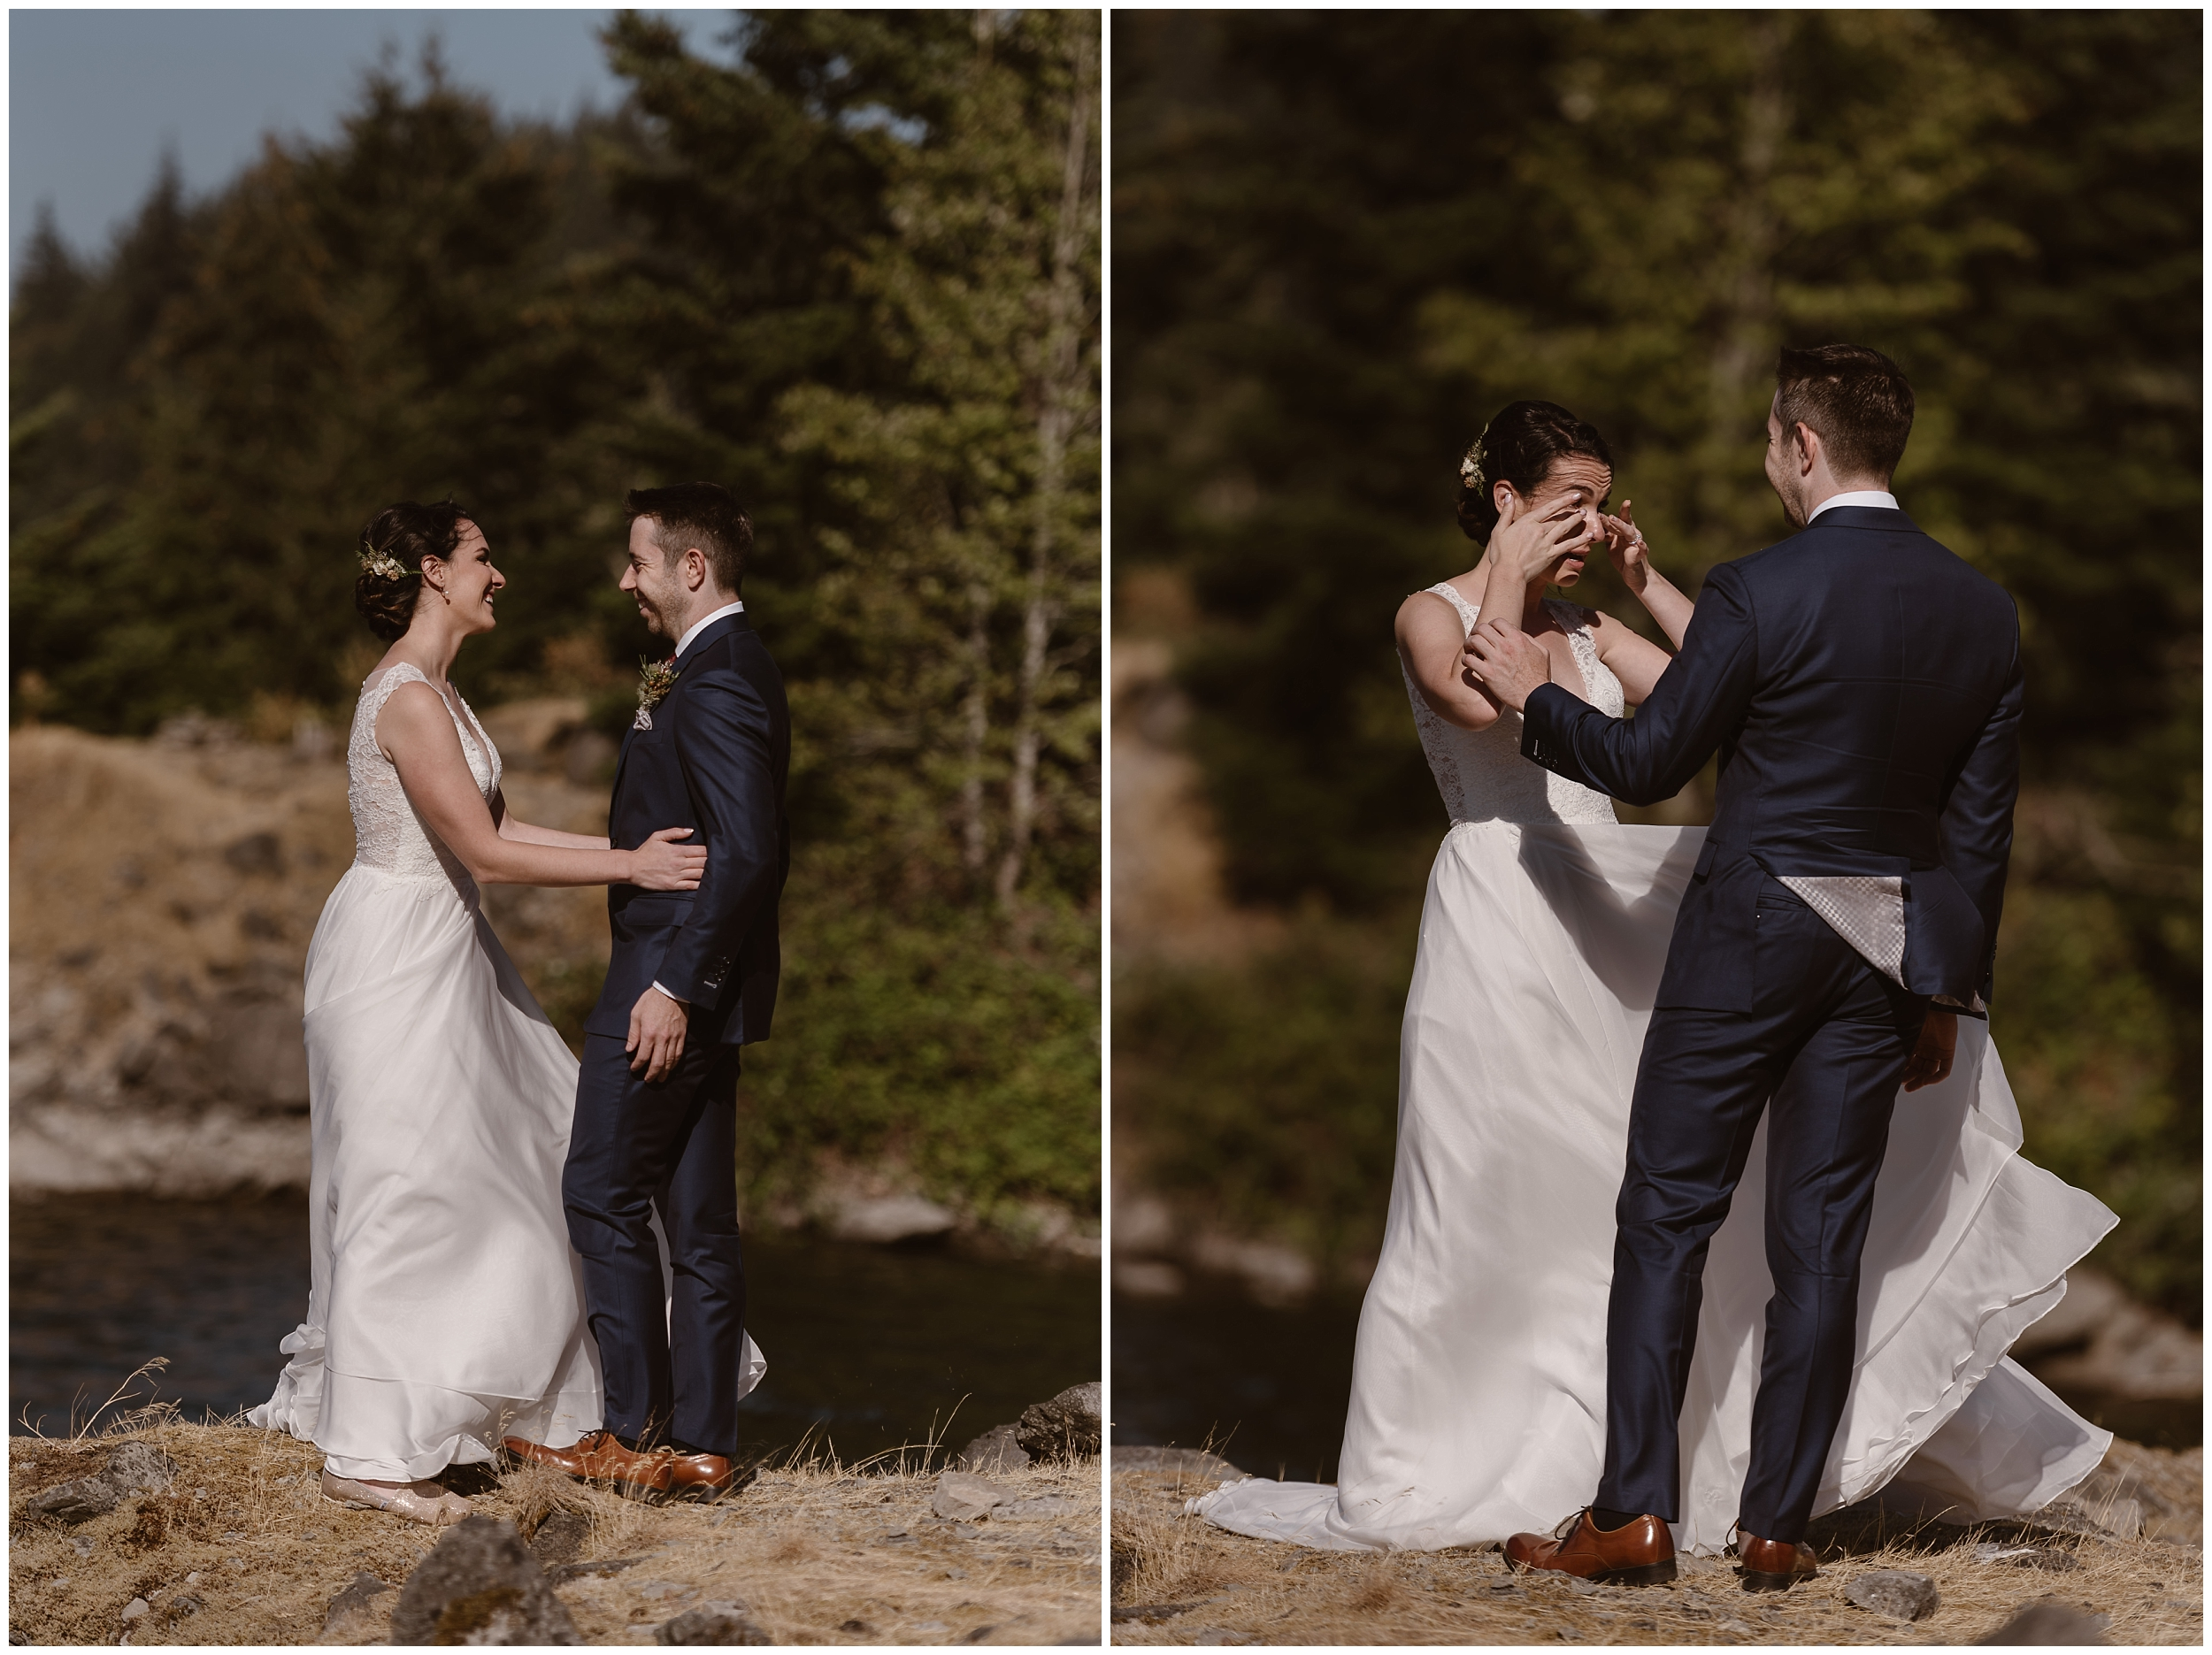 In these side-by-side elopement pictures, Lauryn and David, the bride and groom, take a few final looks at each other before they start their elopement ceremony. Lauryn wipes tears from her eyes in the photo on the right, and holds on tight to David in the photo on the left.